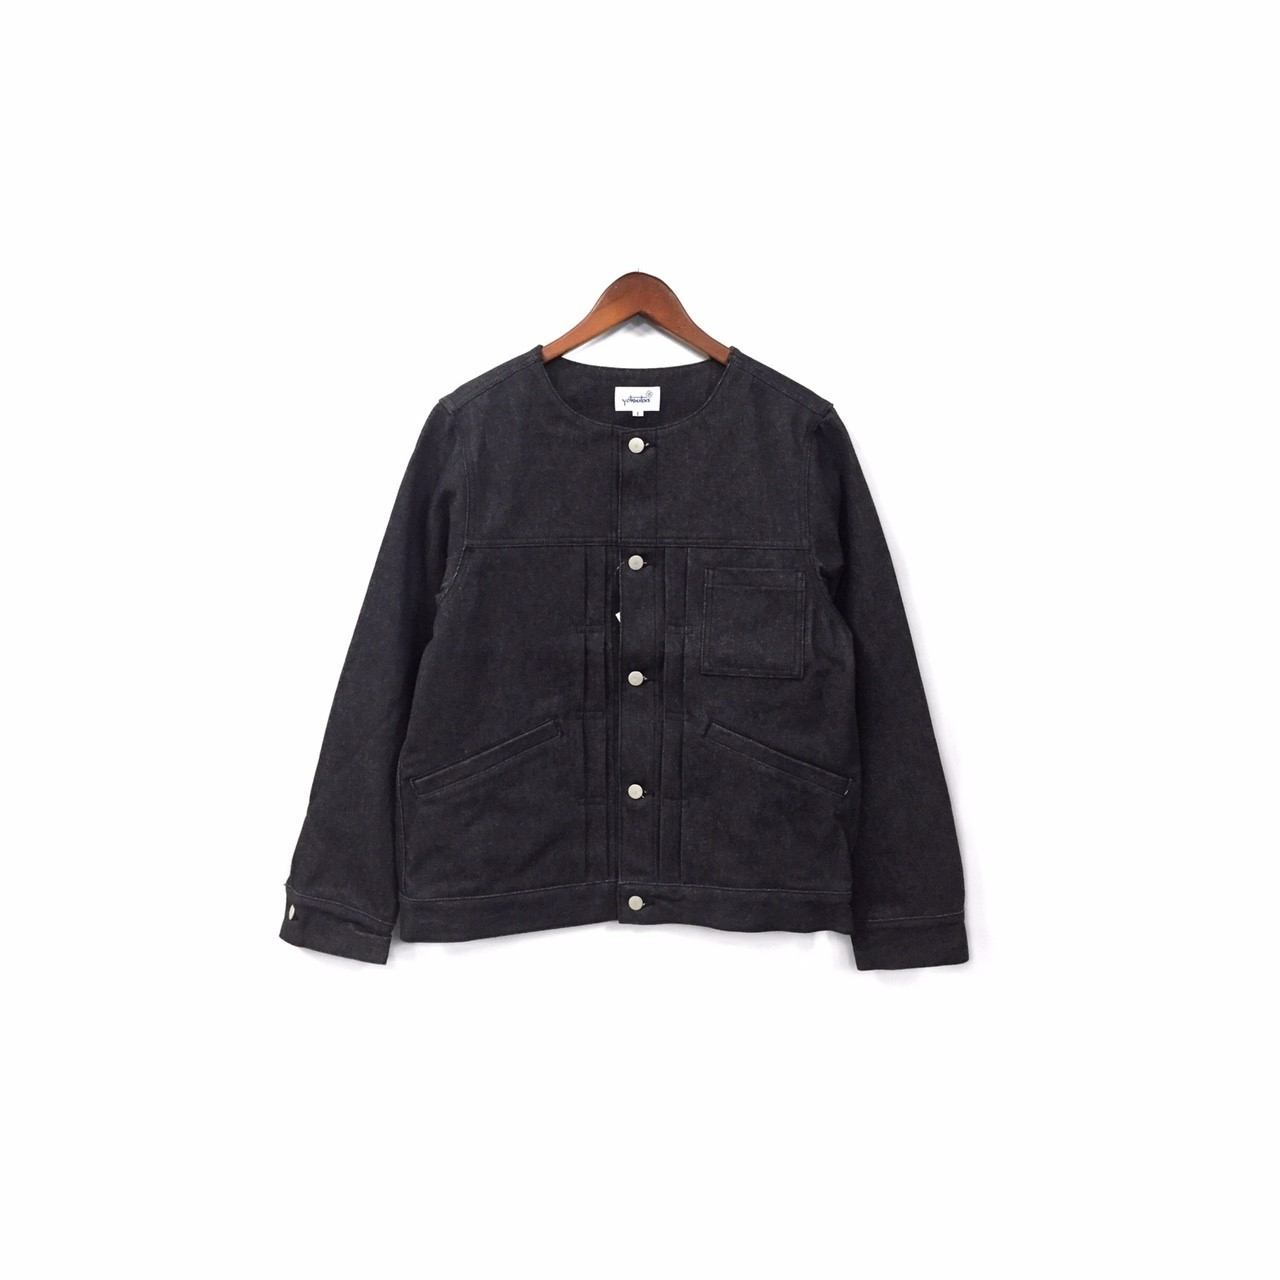 yotsuba - Nocollar Denim Jacket / Black ¥26000+tax